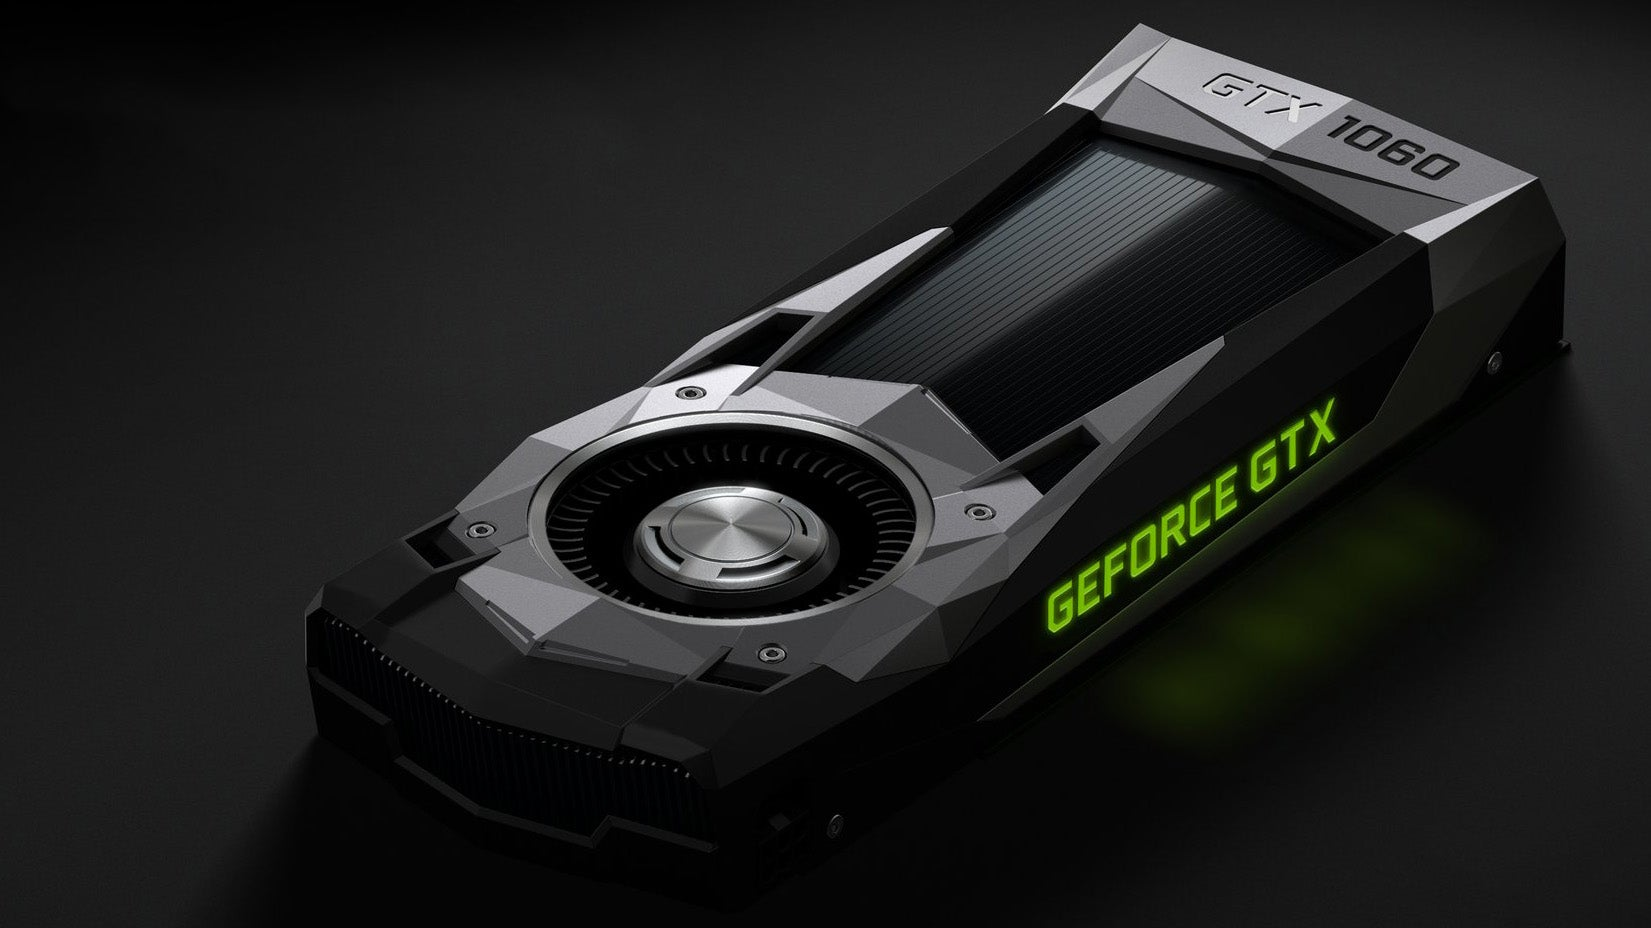 Get VR-ready with this MSI GeForce GTX 1060 (6GB) GPU deal